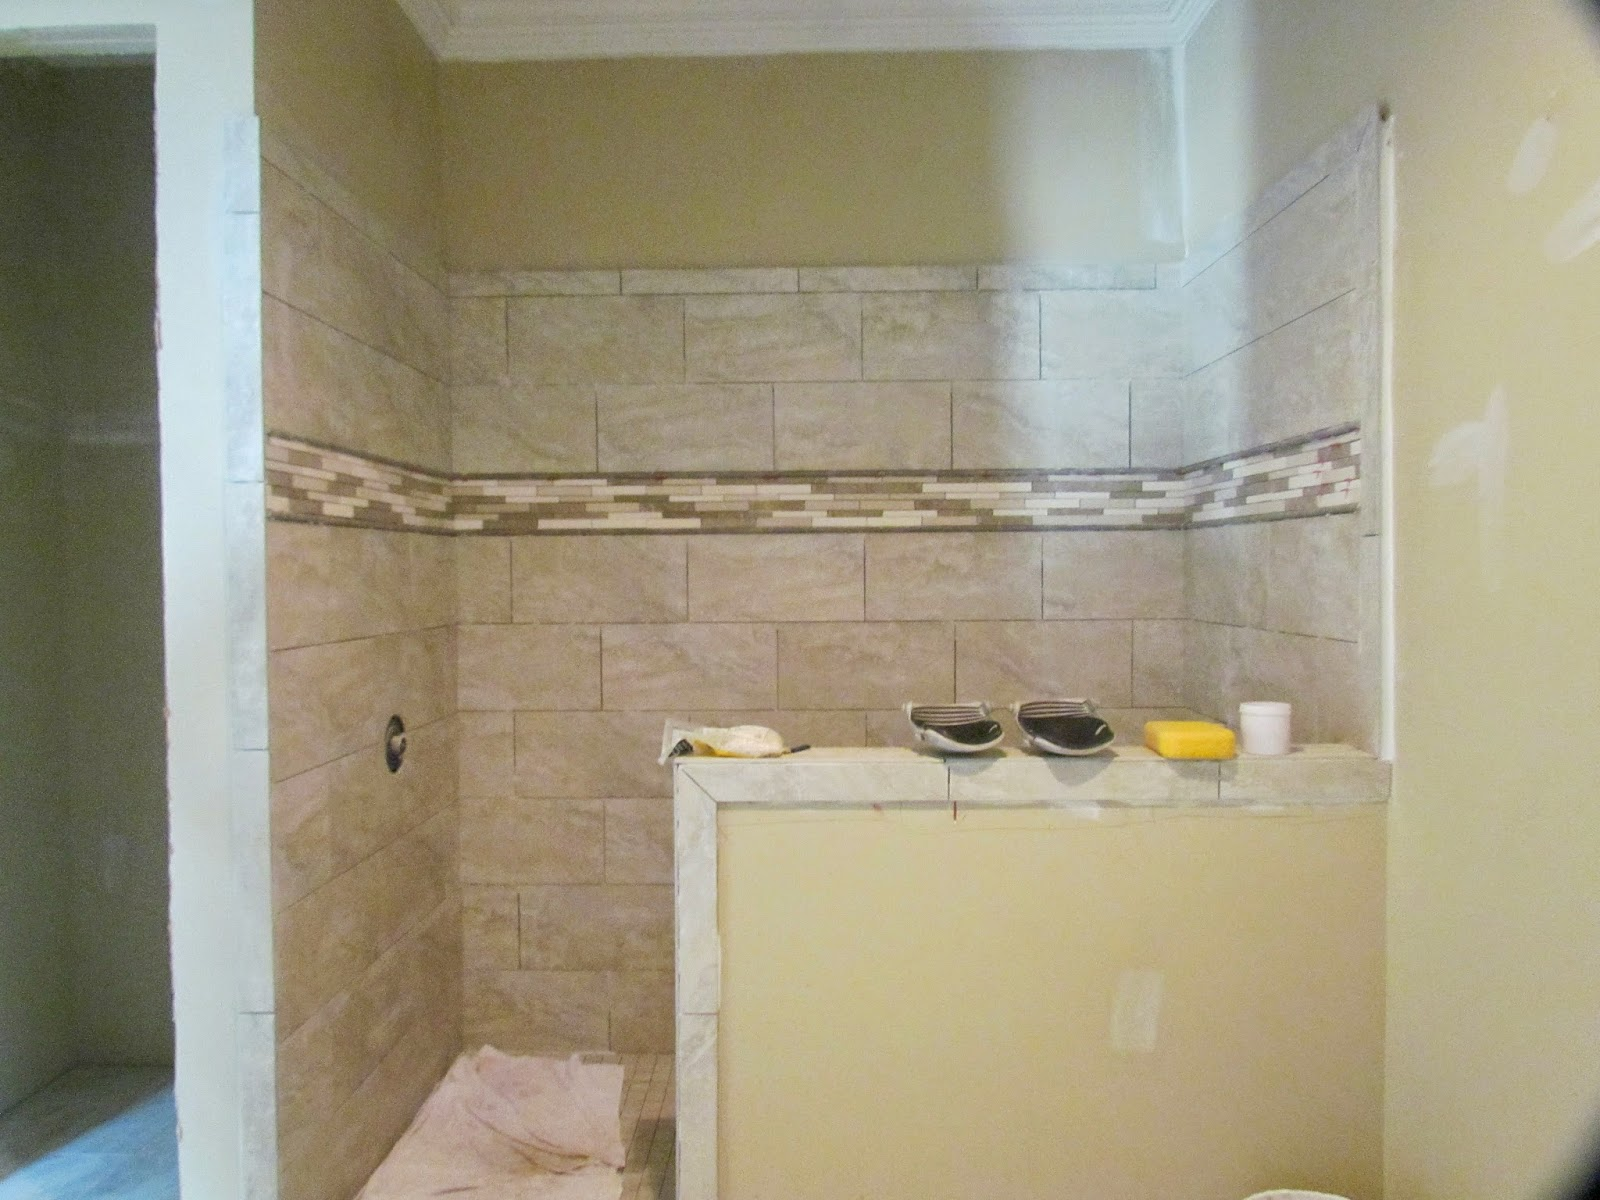 Driftwood Musings: Tile, Wood Trim and Paint Colors